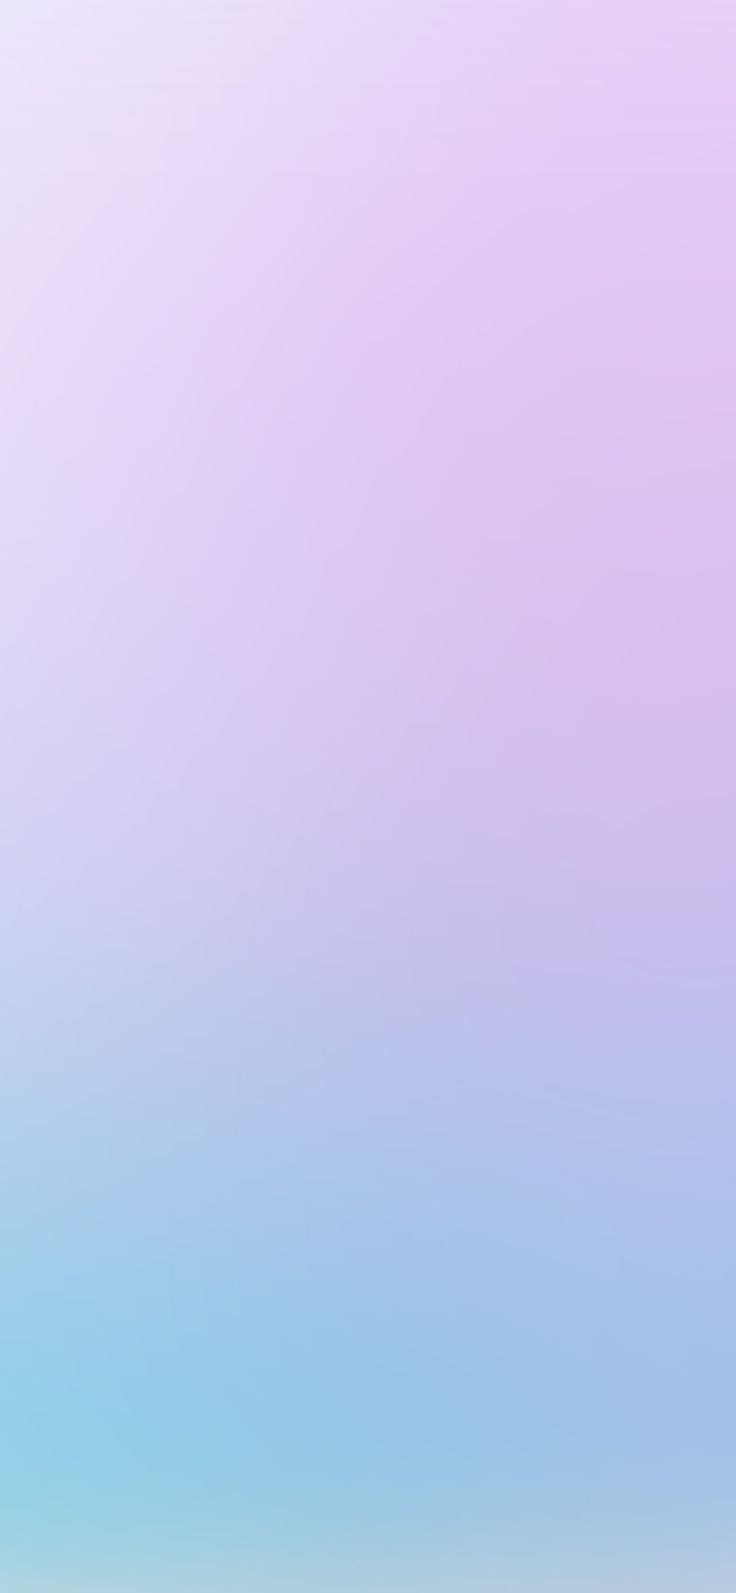 sm98-purple-pastel-blur-gradation via iPhoneXpapers.com – Wallpapers for iPhone … – Cha